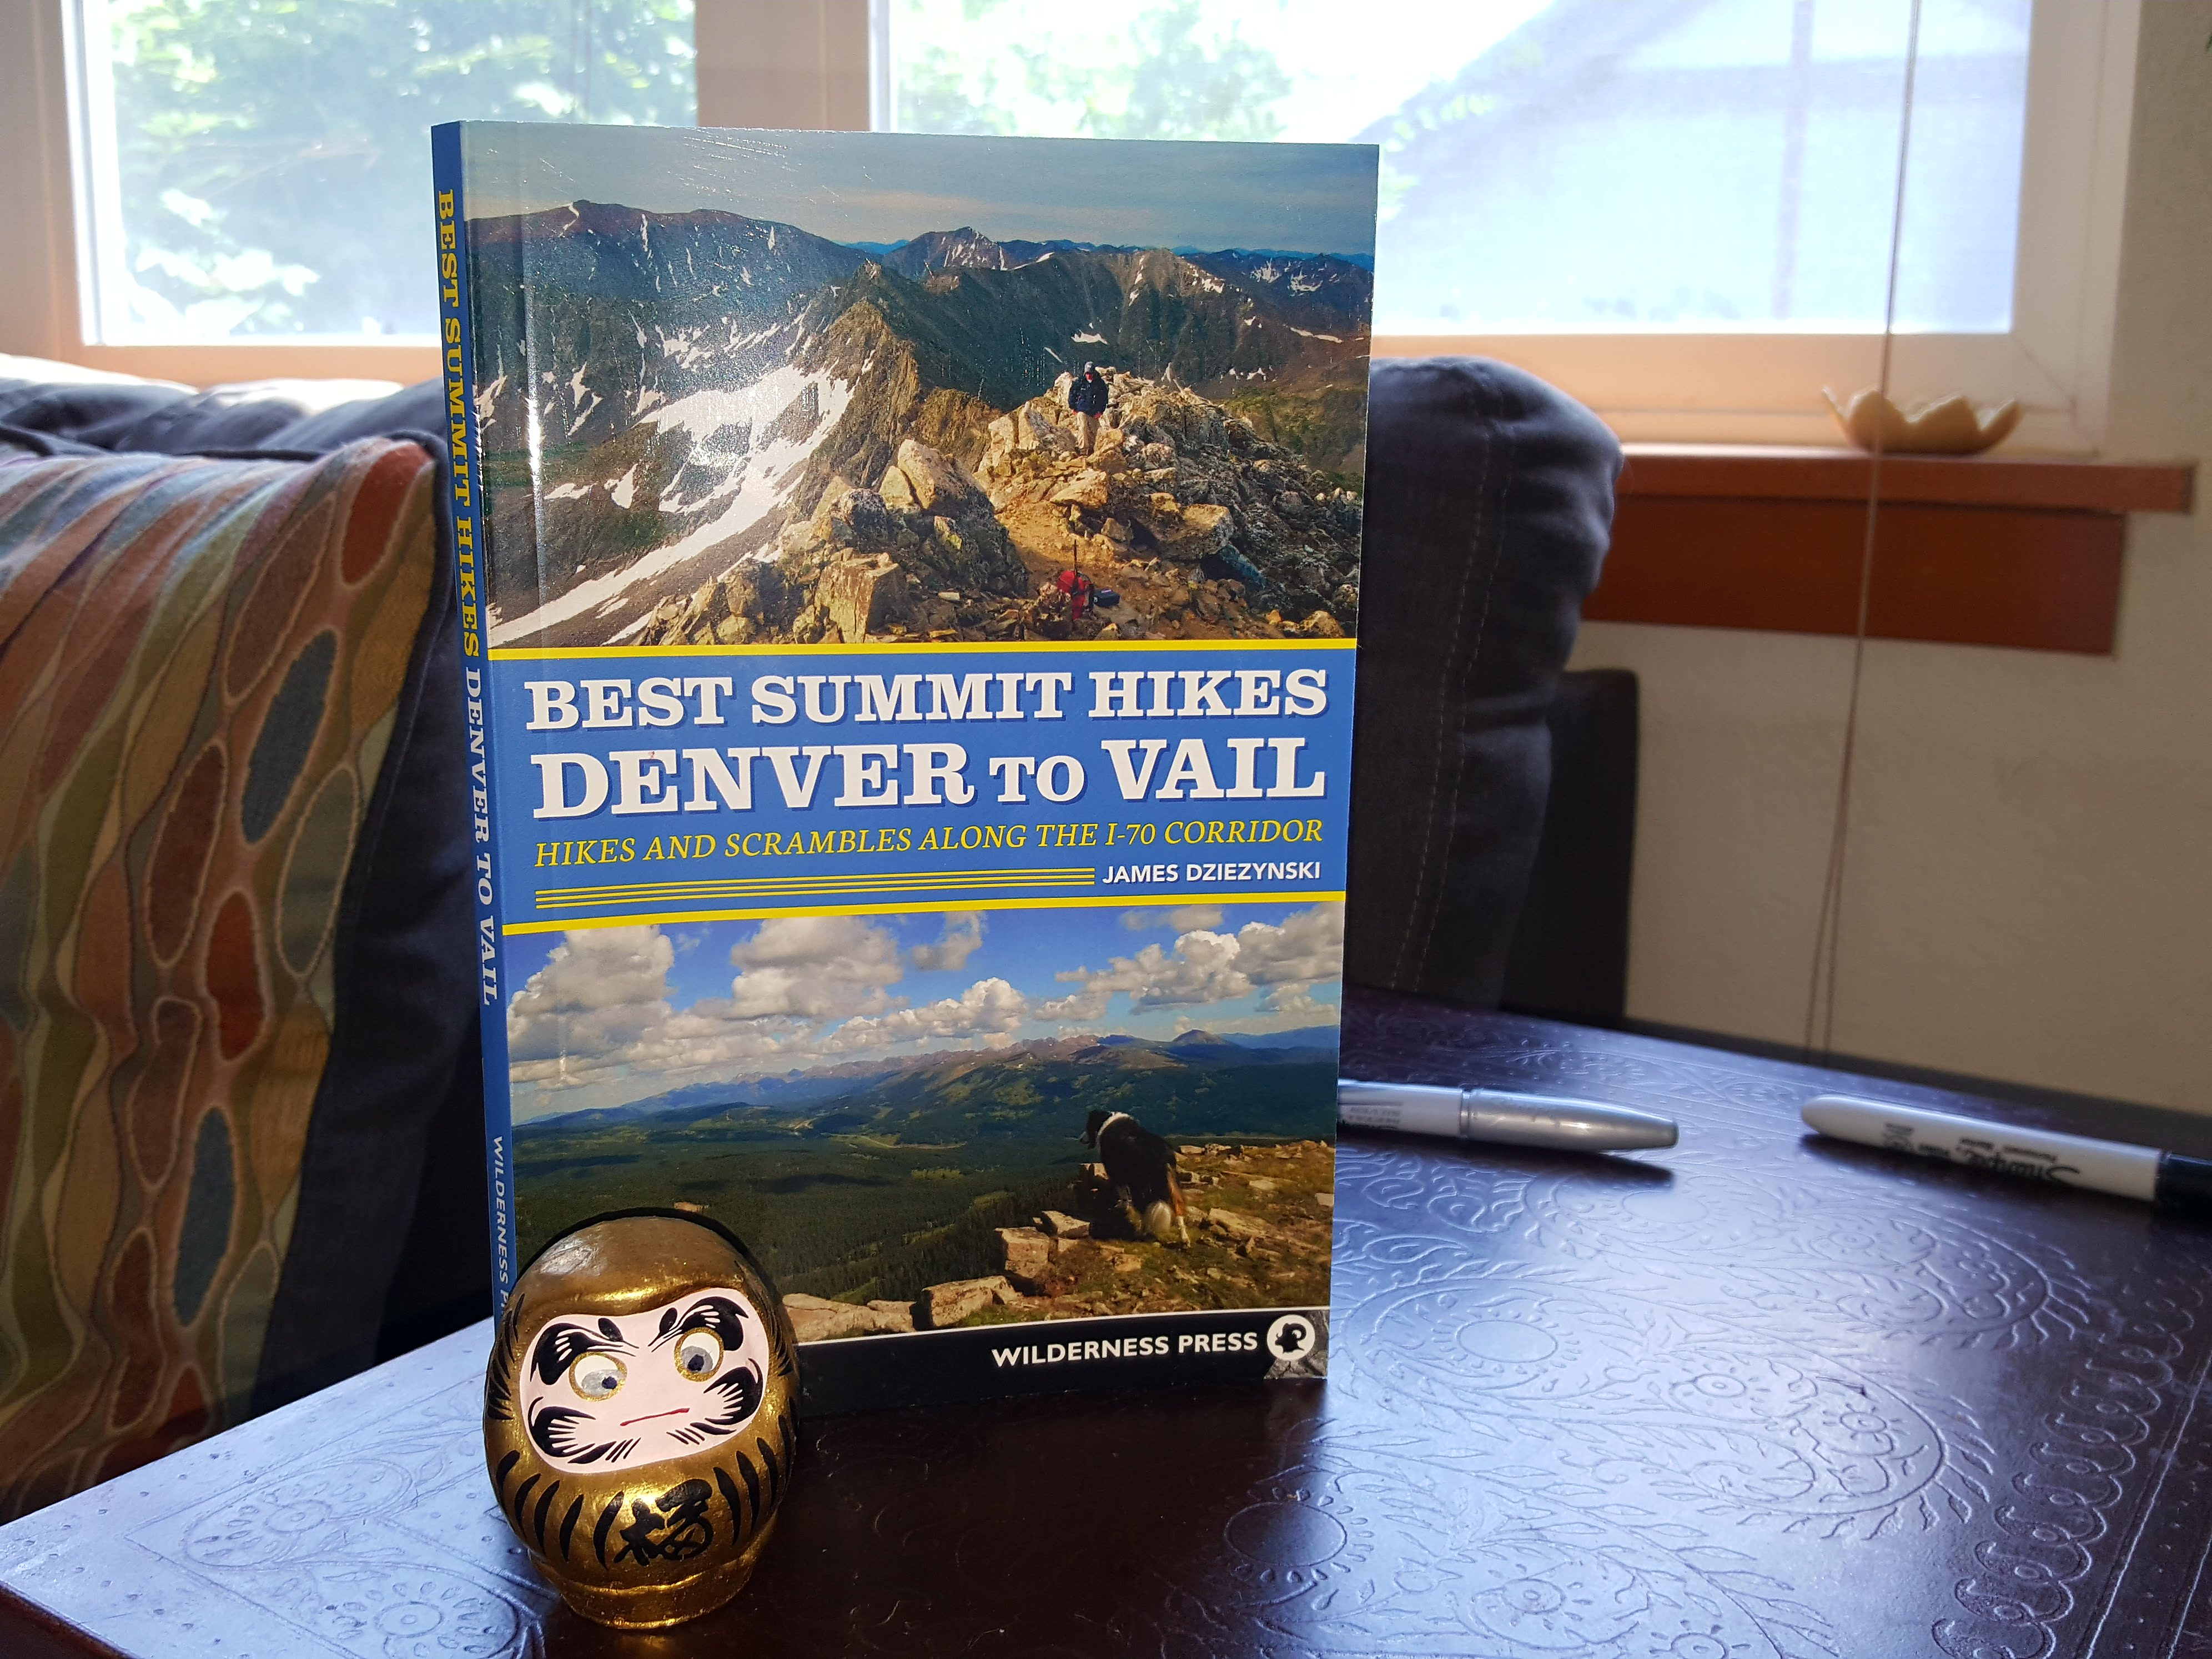 Best Summit Hikes: Denver to Vail Now Out!